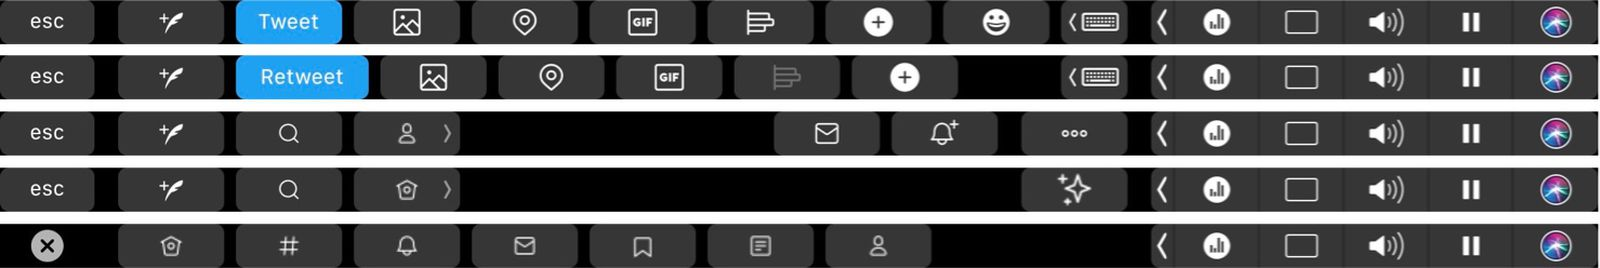 Ícone dos Twitter na Touch Bar